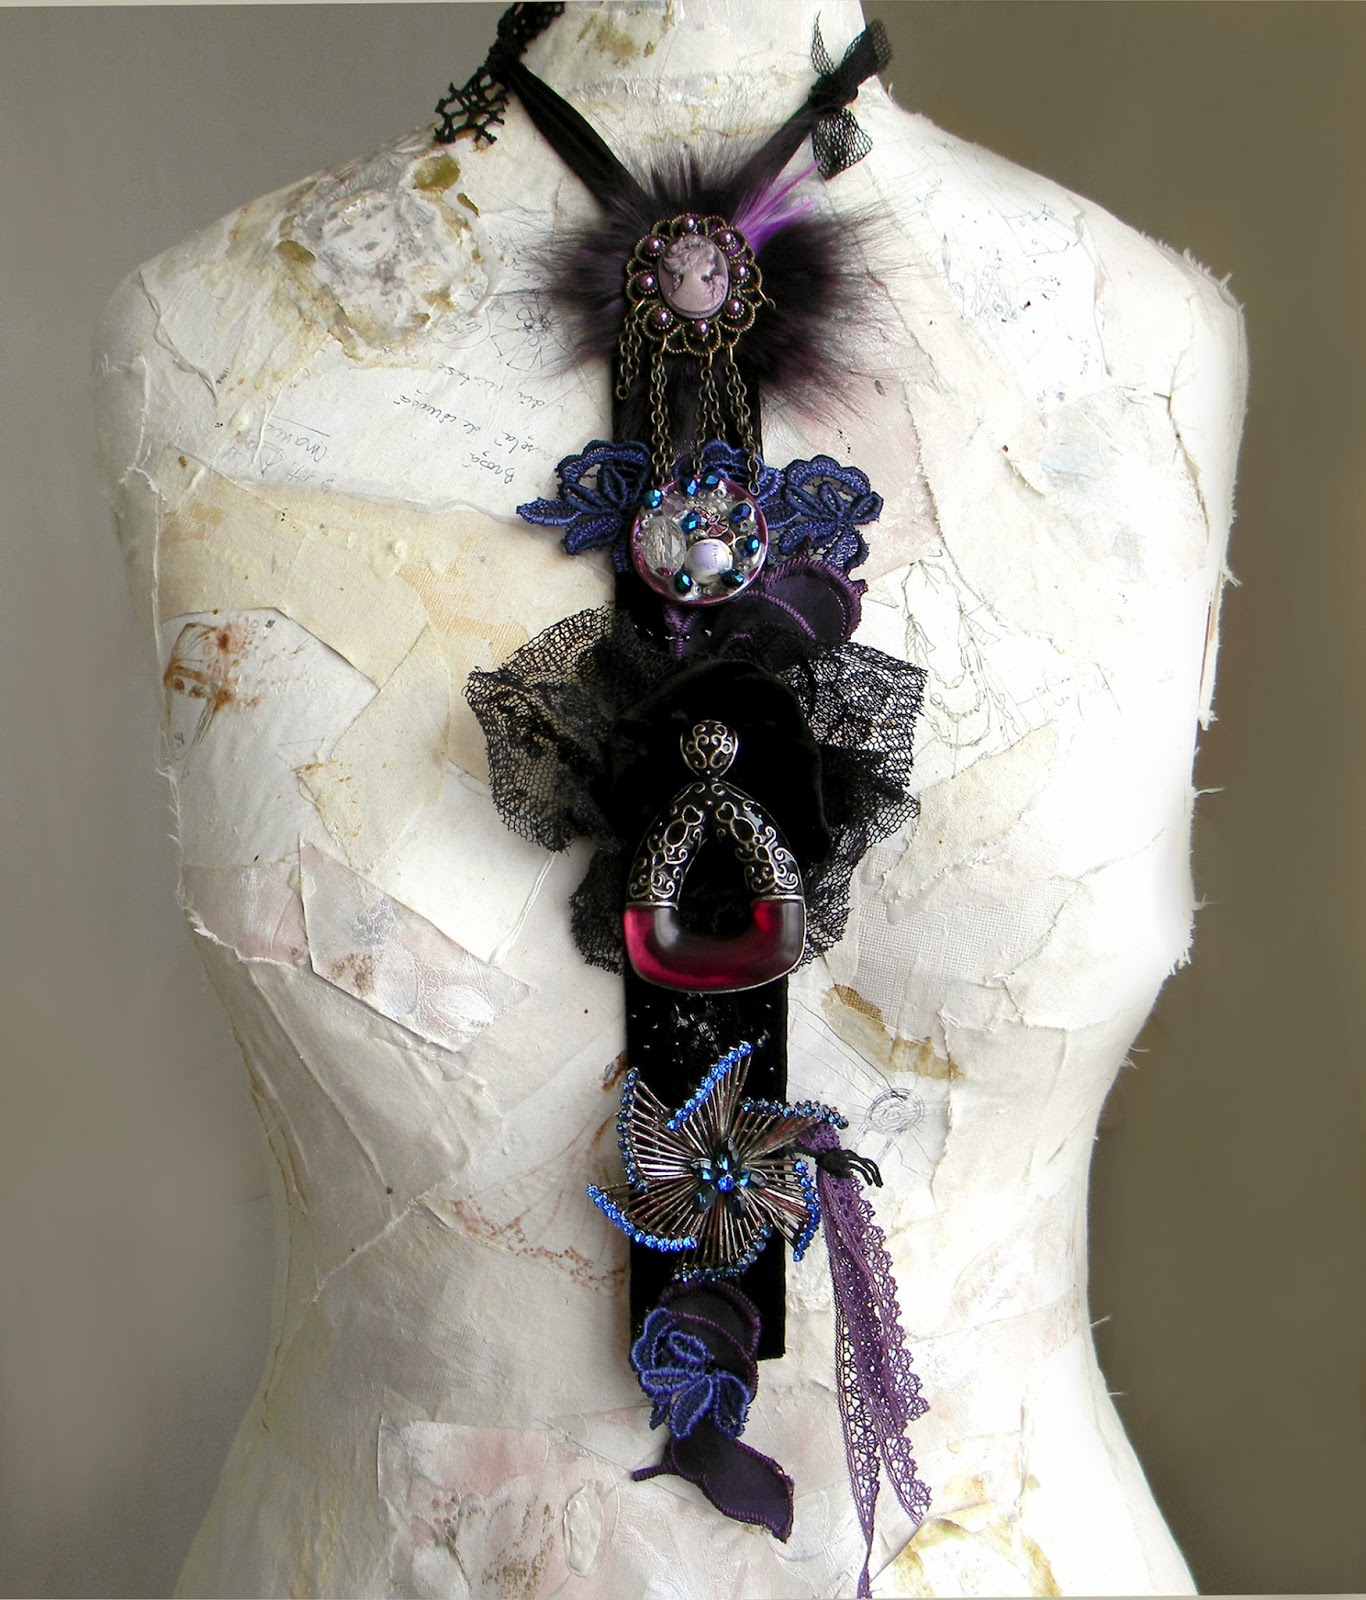 Statement Necklace, Textile Neck Piece or Necktie Victorian Gothic inspired in Black, Blue and Purple Plum